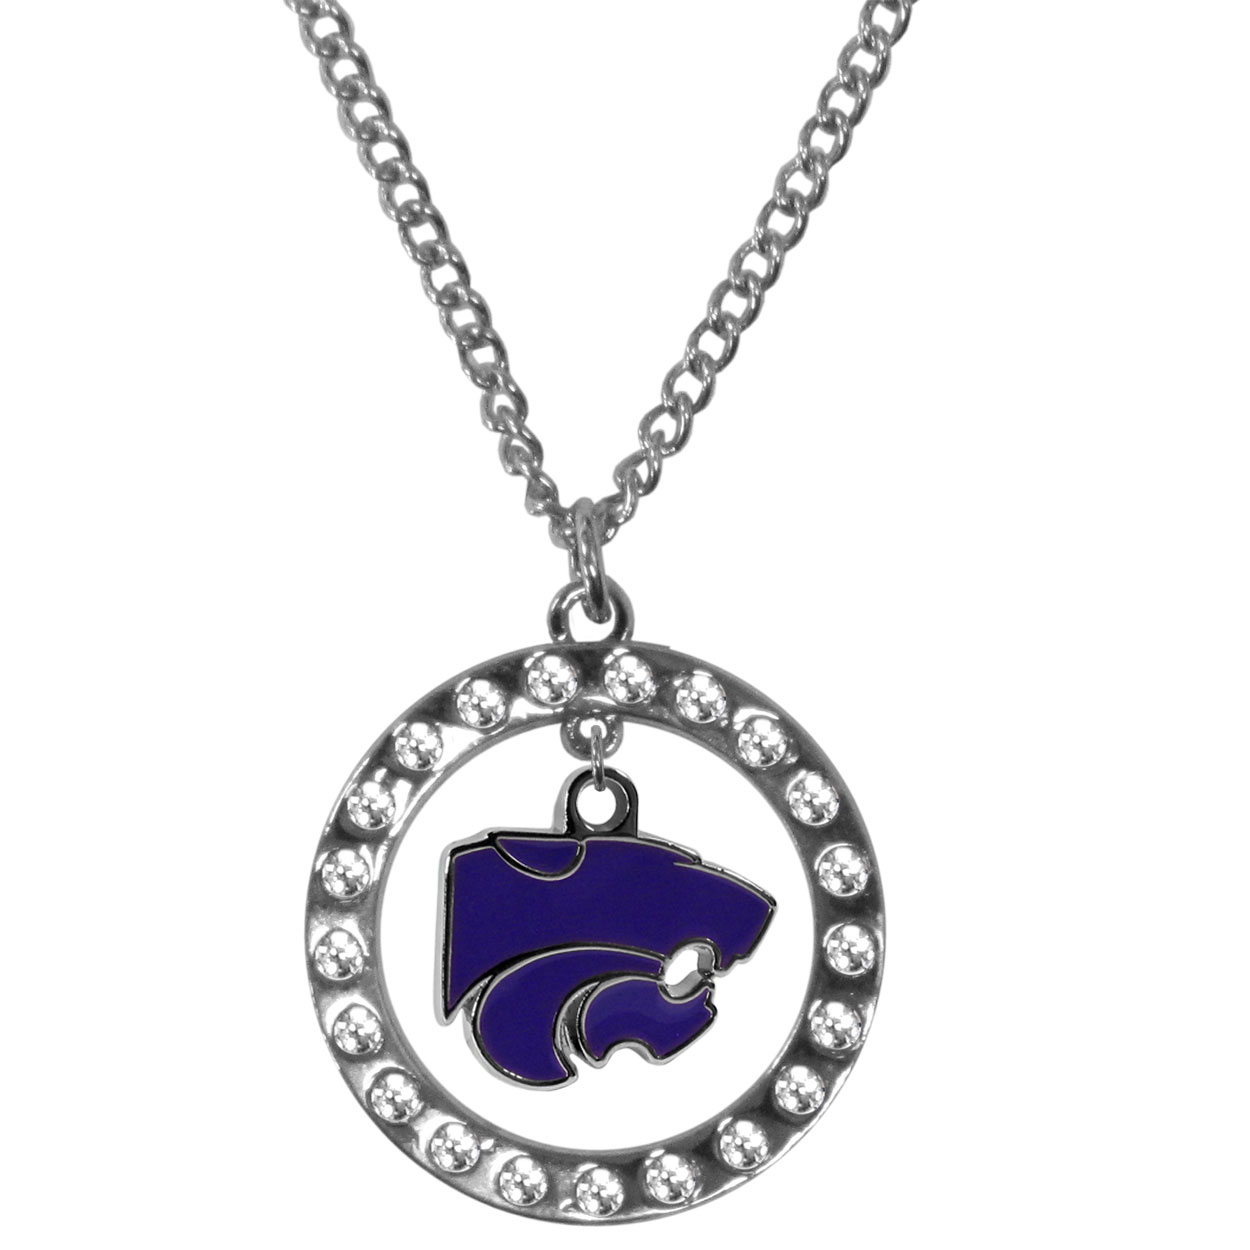 Kansas St. Wildcats Rhinestone Hoop Necklaces - Our Kansas St. Wildcats rhinestone hoop necklace comes on an 18 inch chain and features a hoop covered in rhinestones with a high polish chrome finish and a cast and enameled team charm dangling in the center.